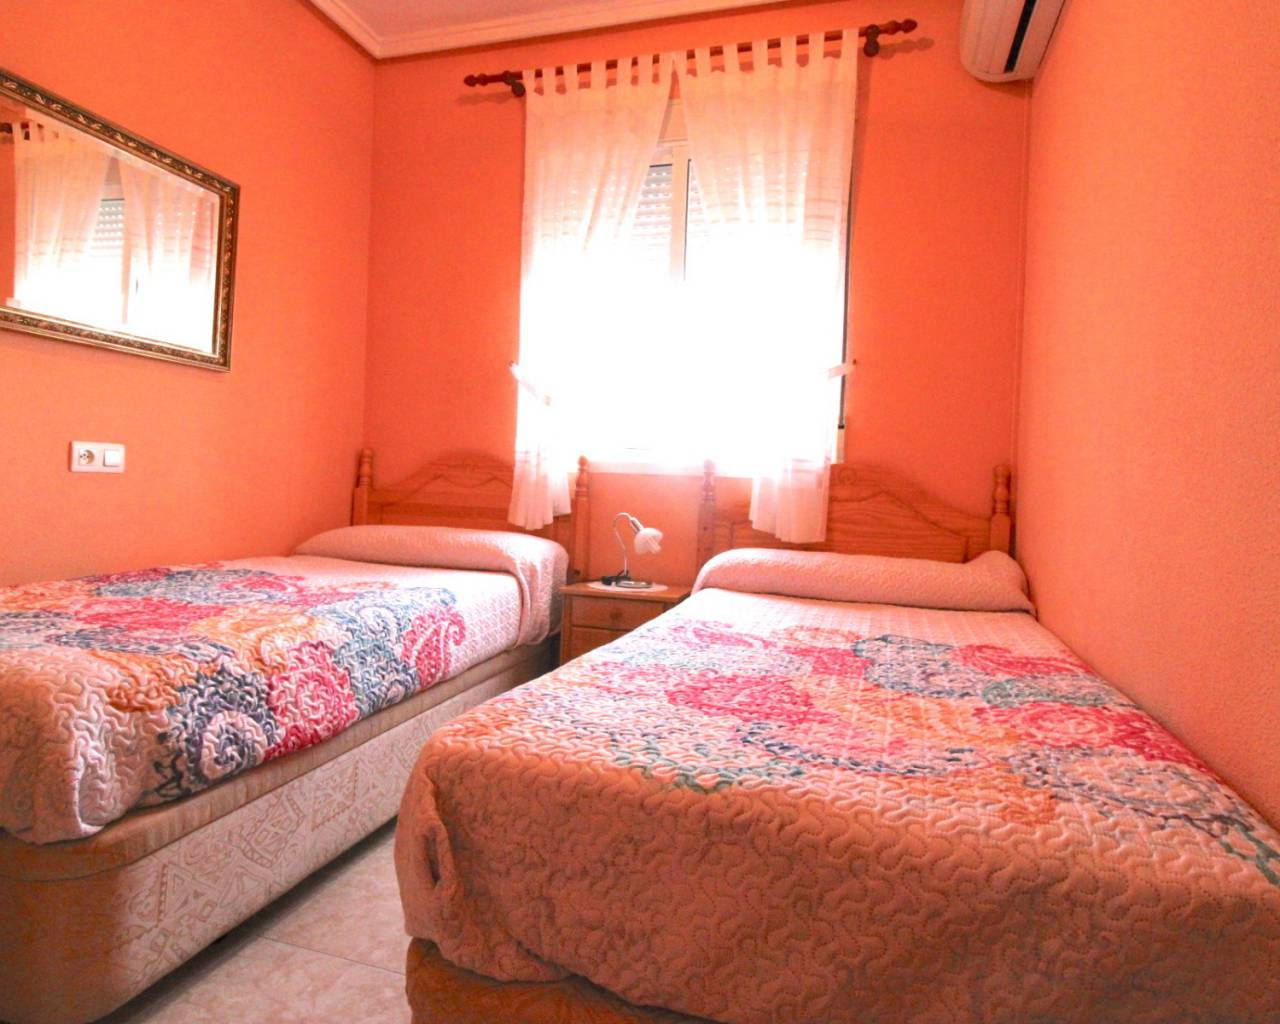 Sale - Bungalow - Torrevieja  - Mar Azul